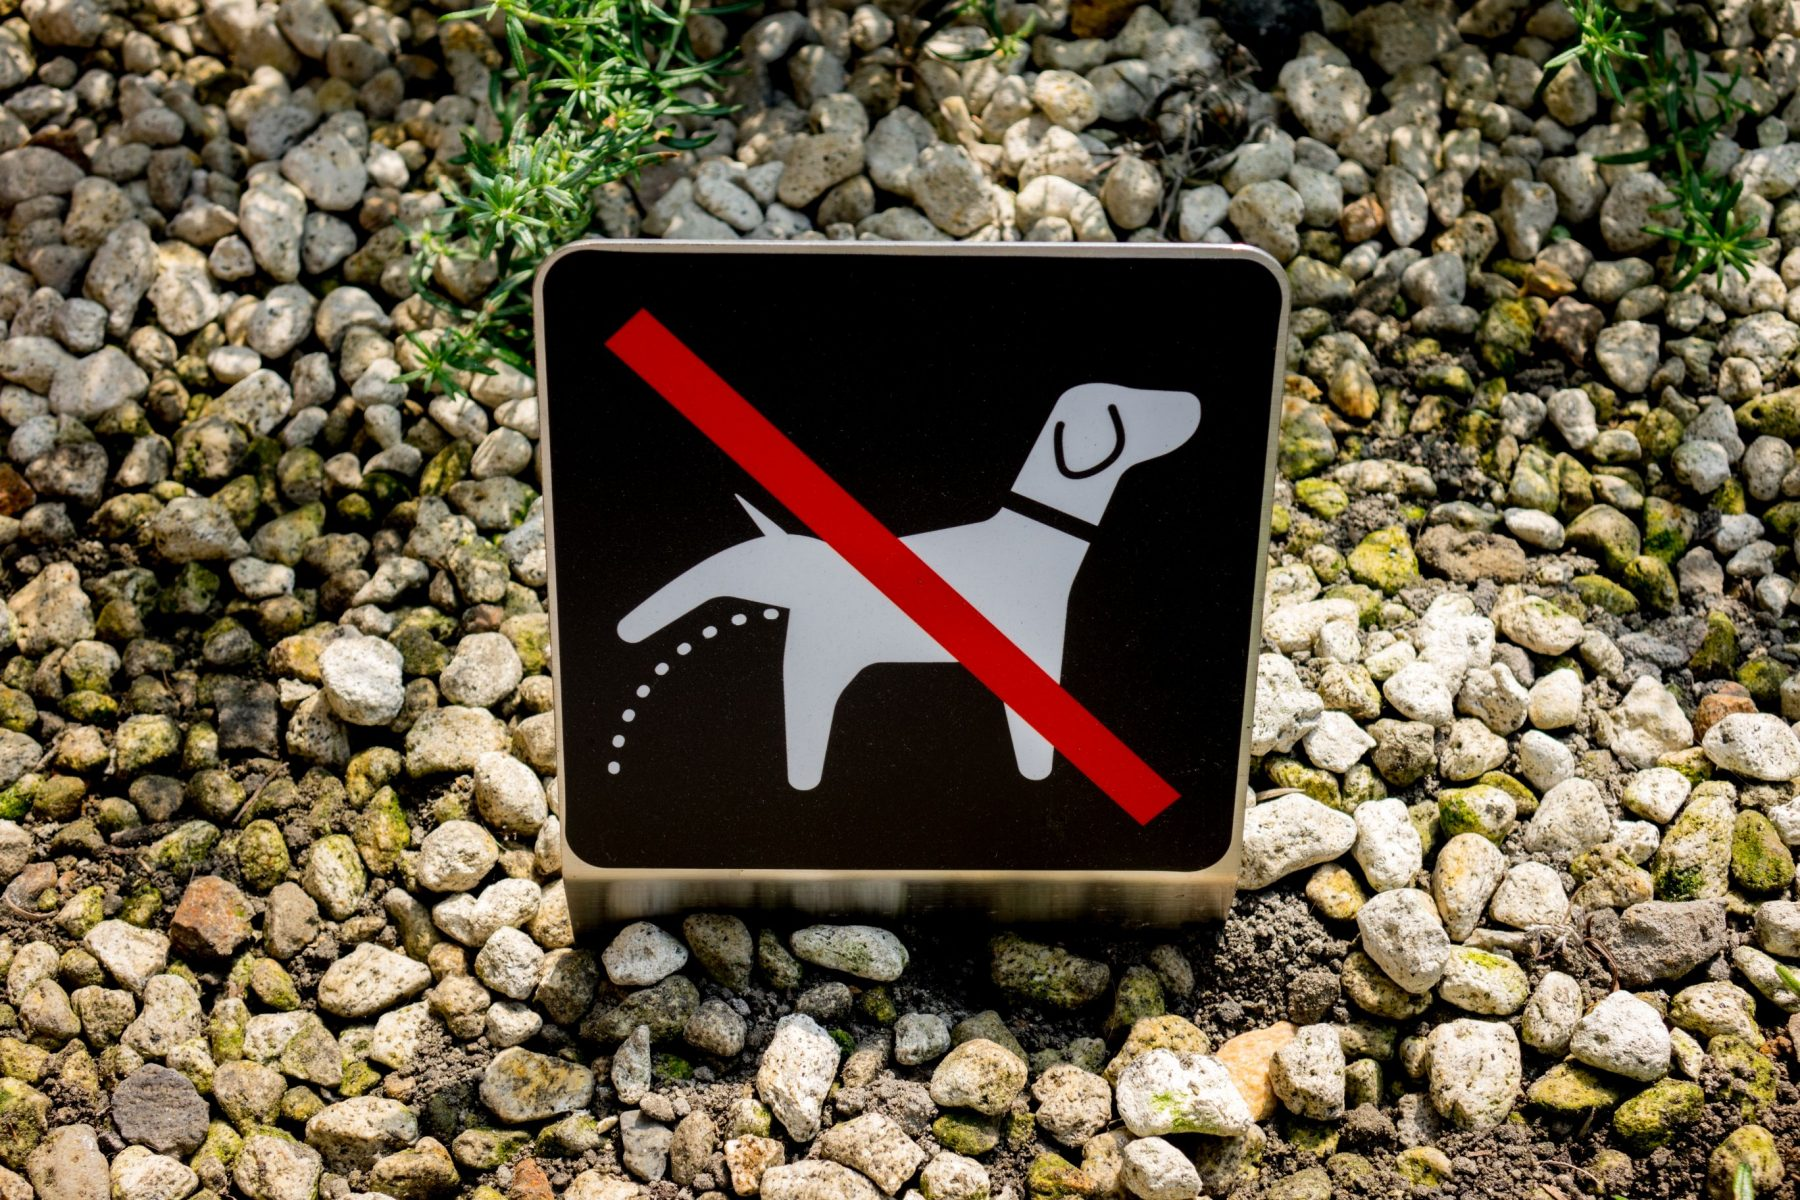 No urinating dogs sign.